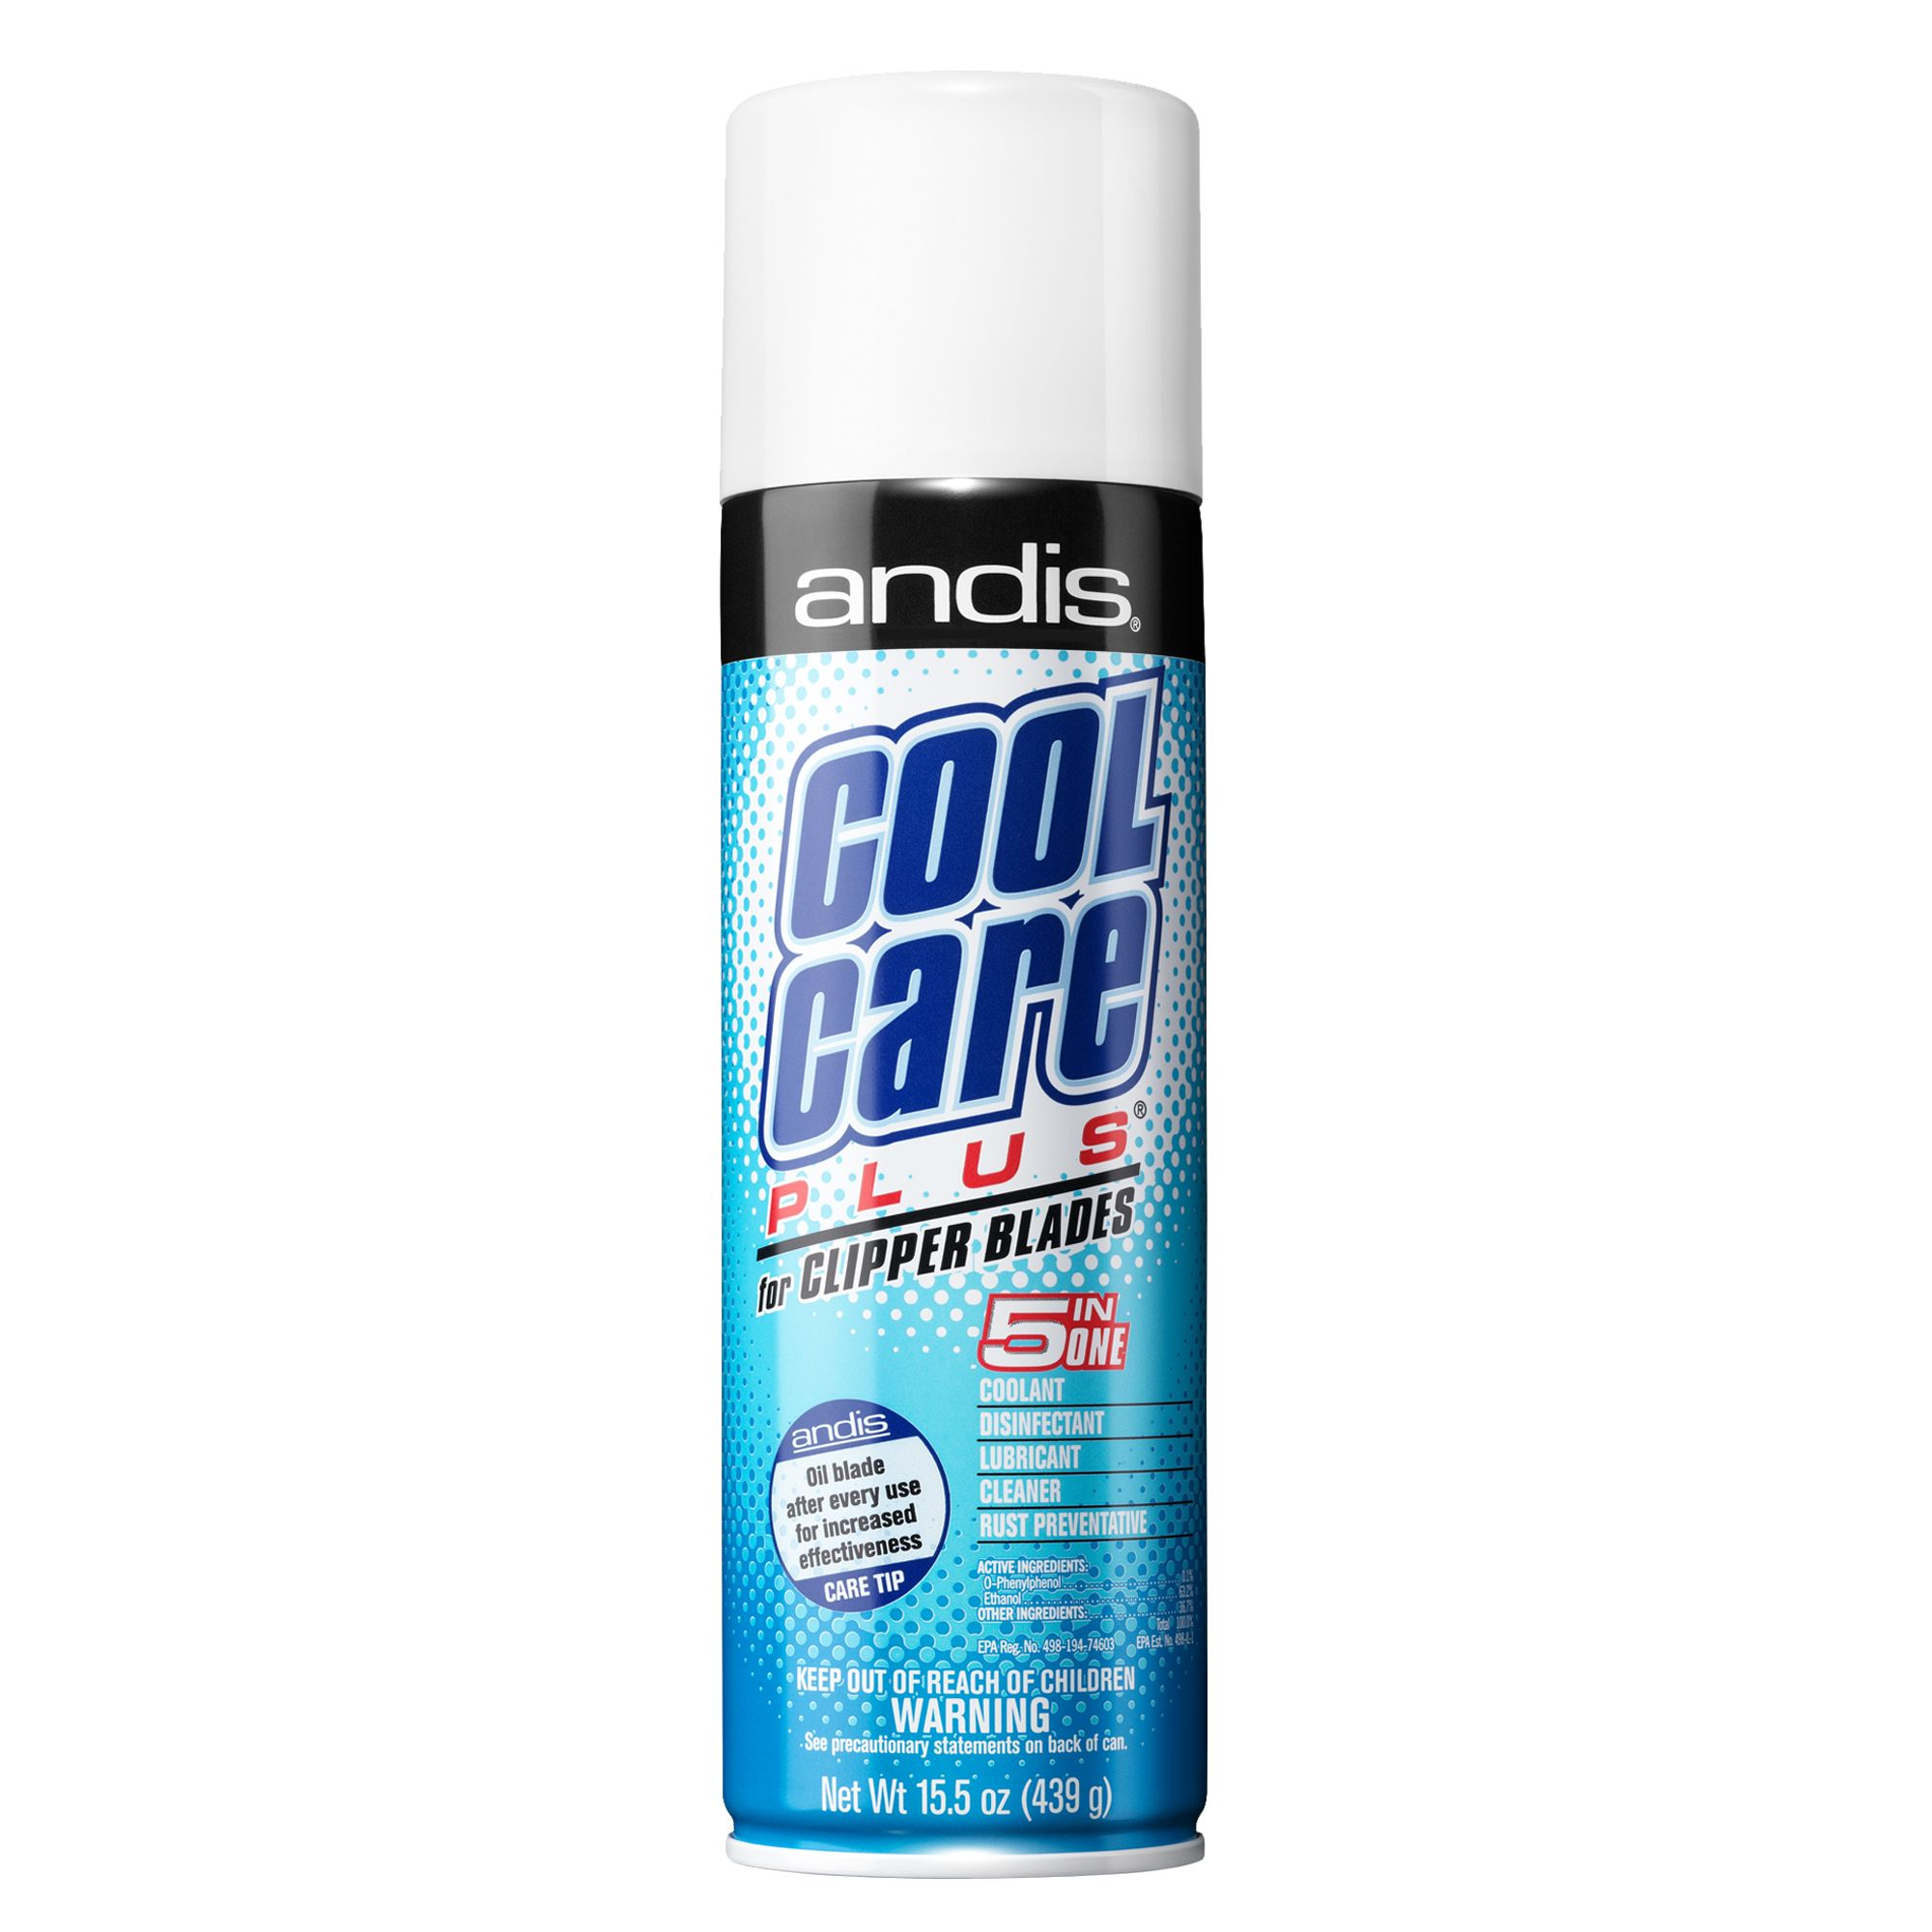 Andis Cool Care Plus Trade Clipper Blade Spray Dog Hair